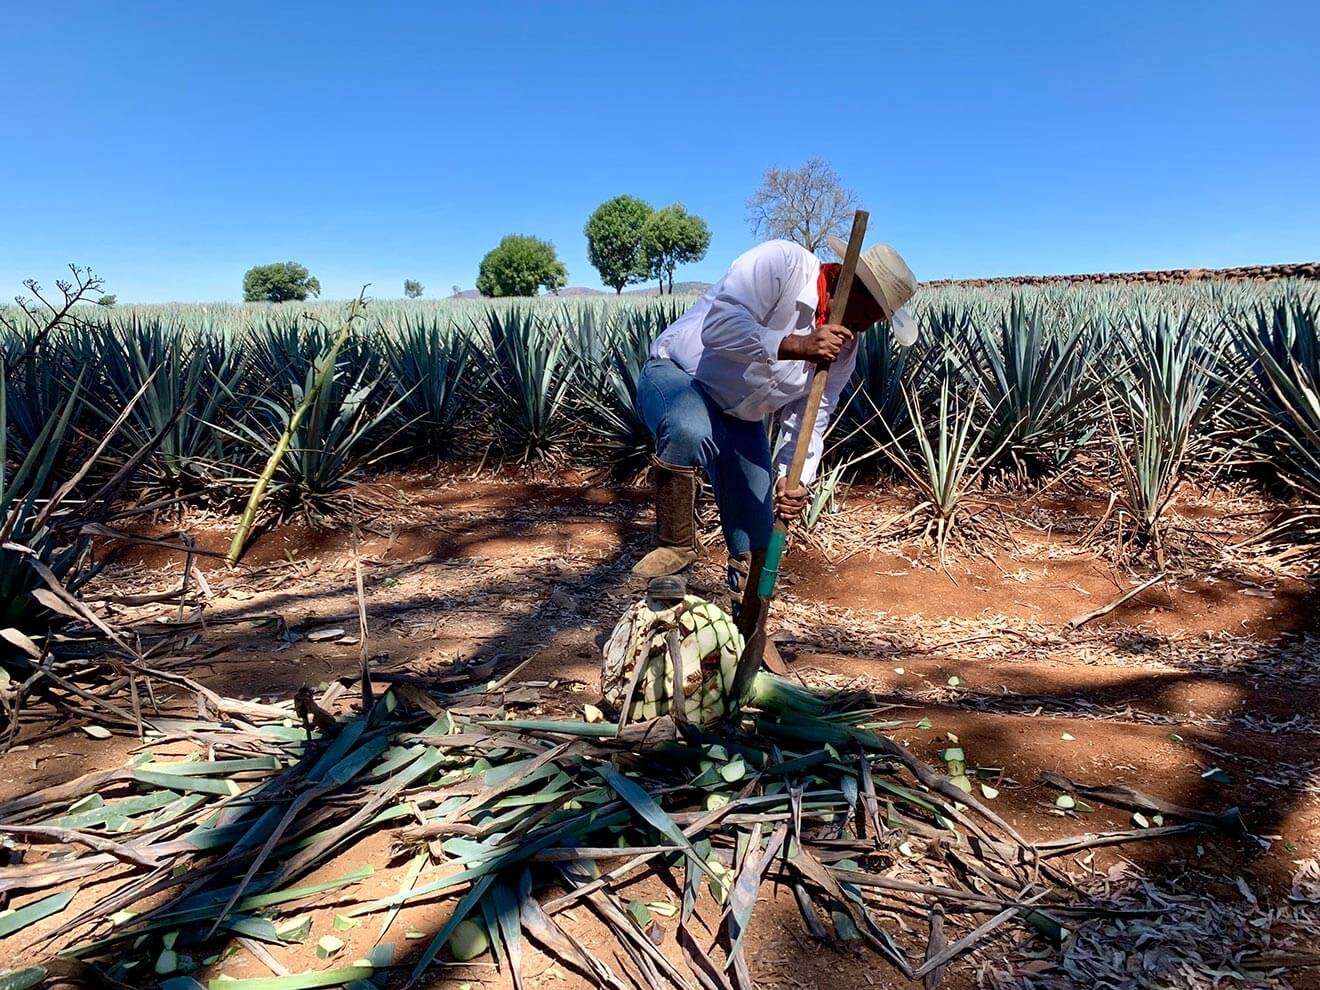 Harvesting Agave, worker in agave field